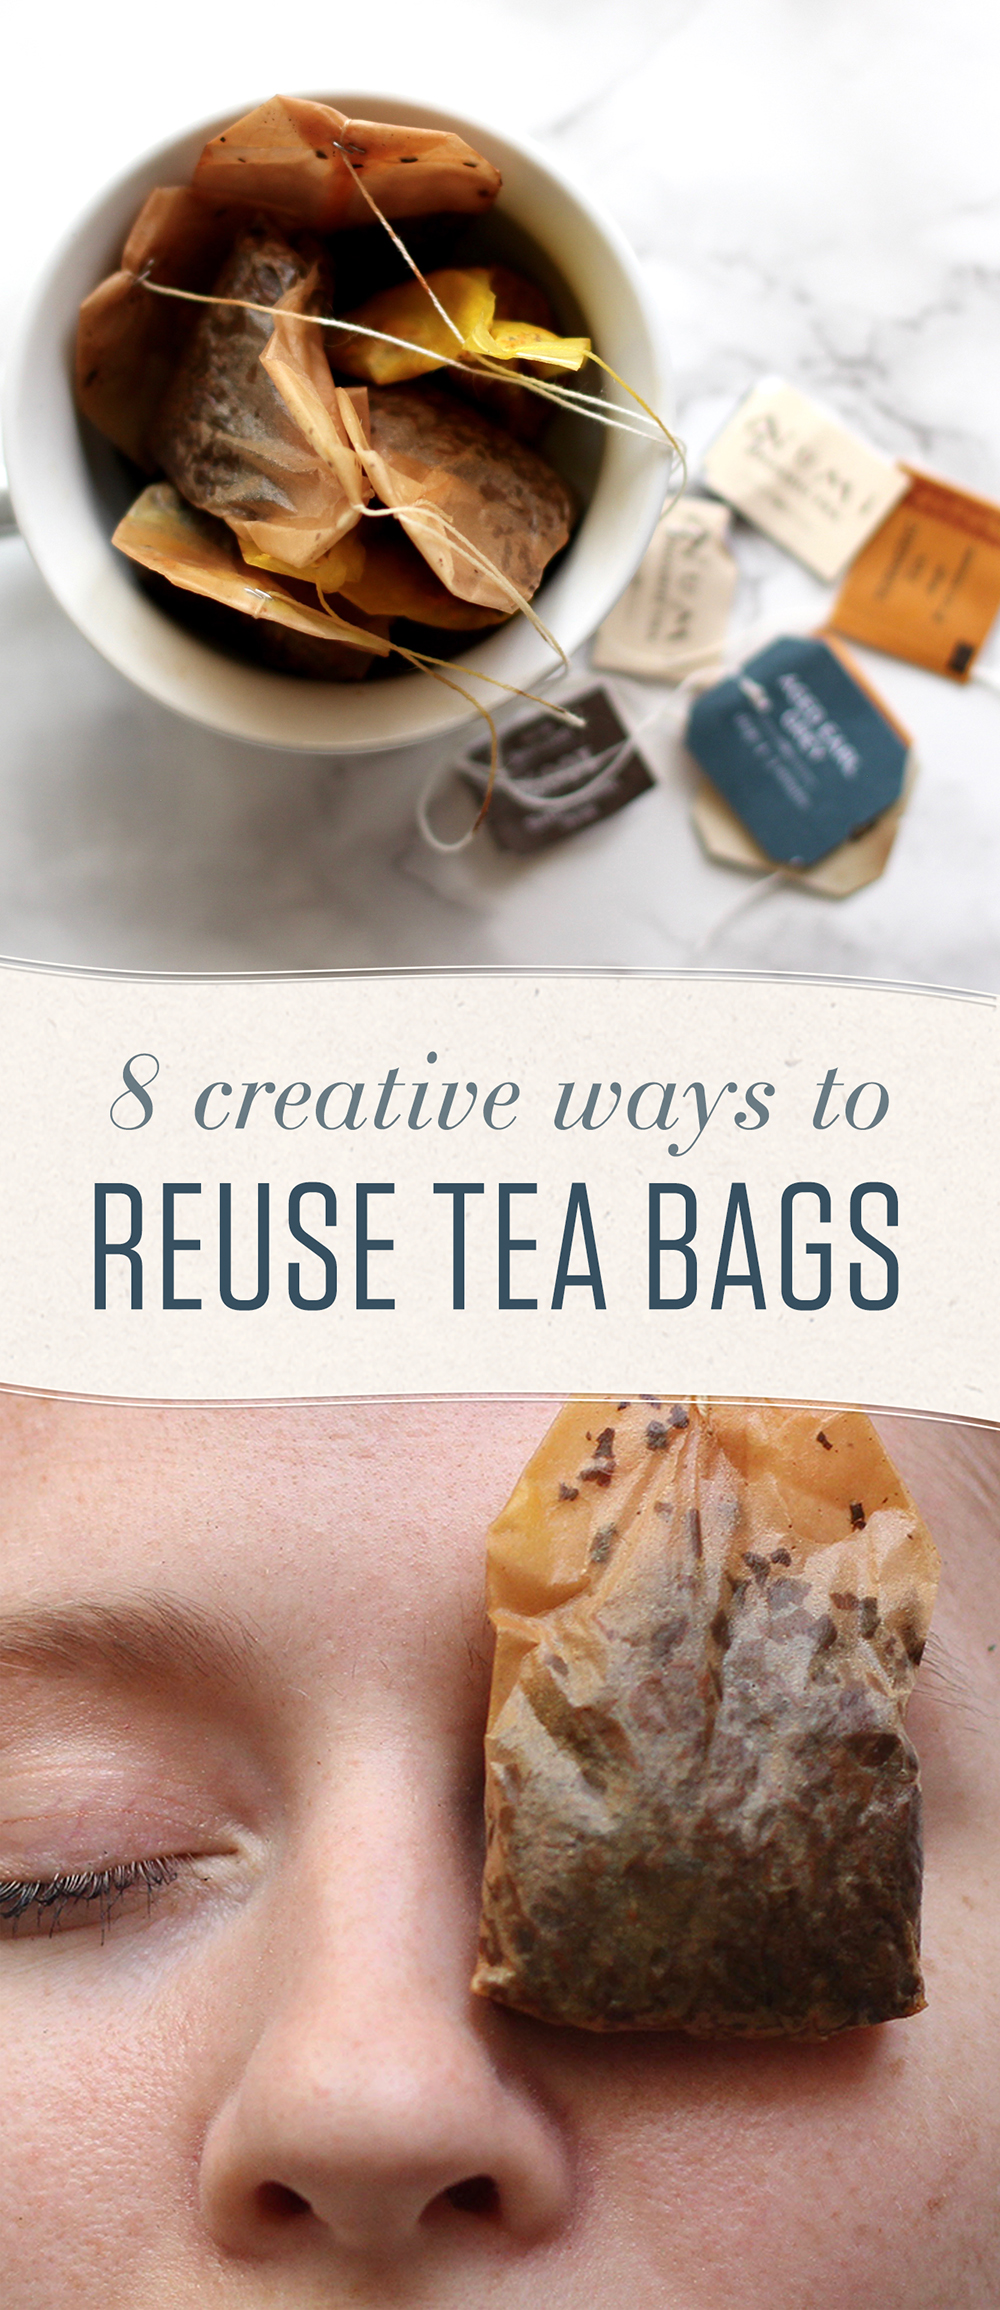 Don't toss those used tea bags! Use them to soothe puffy eyes and sunburns, add flavor to food, and much more that you may know be aware of -- until now!